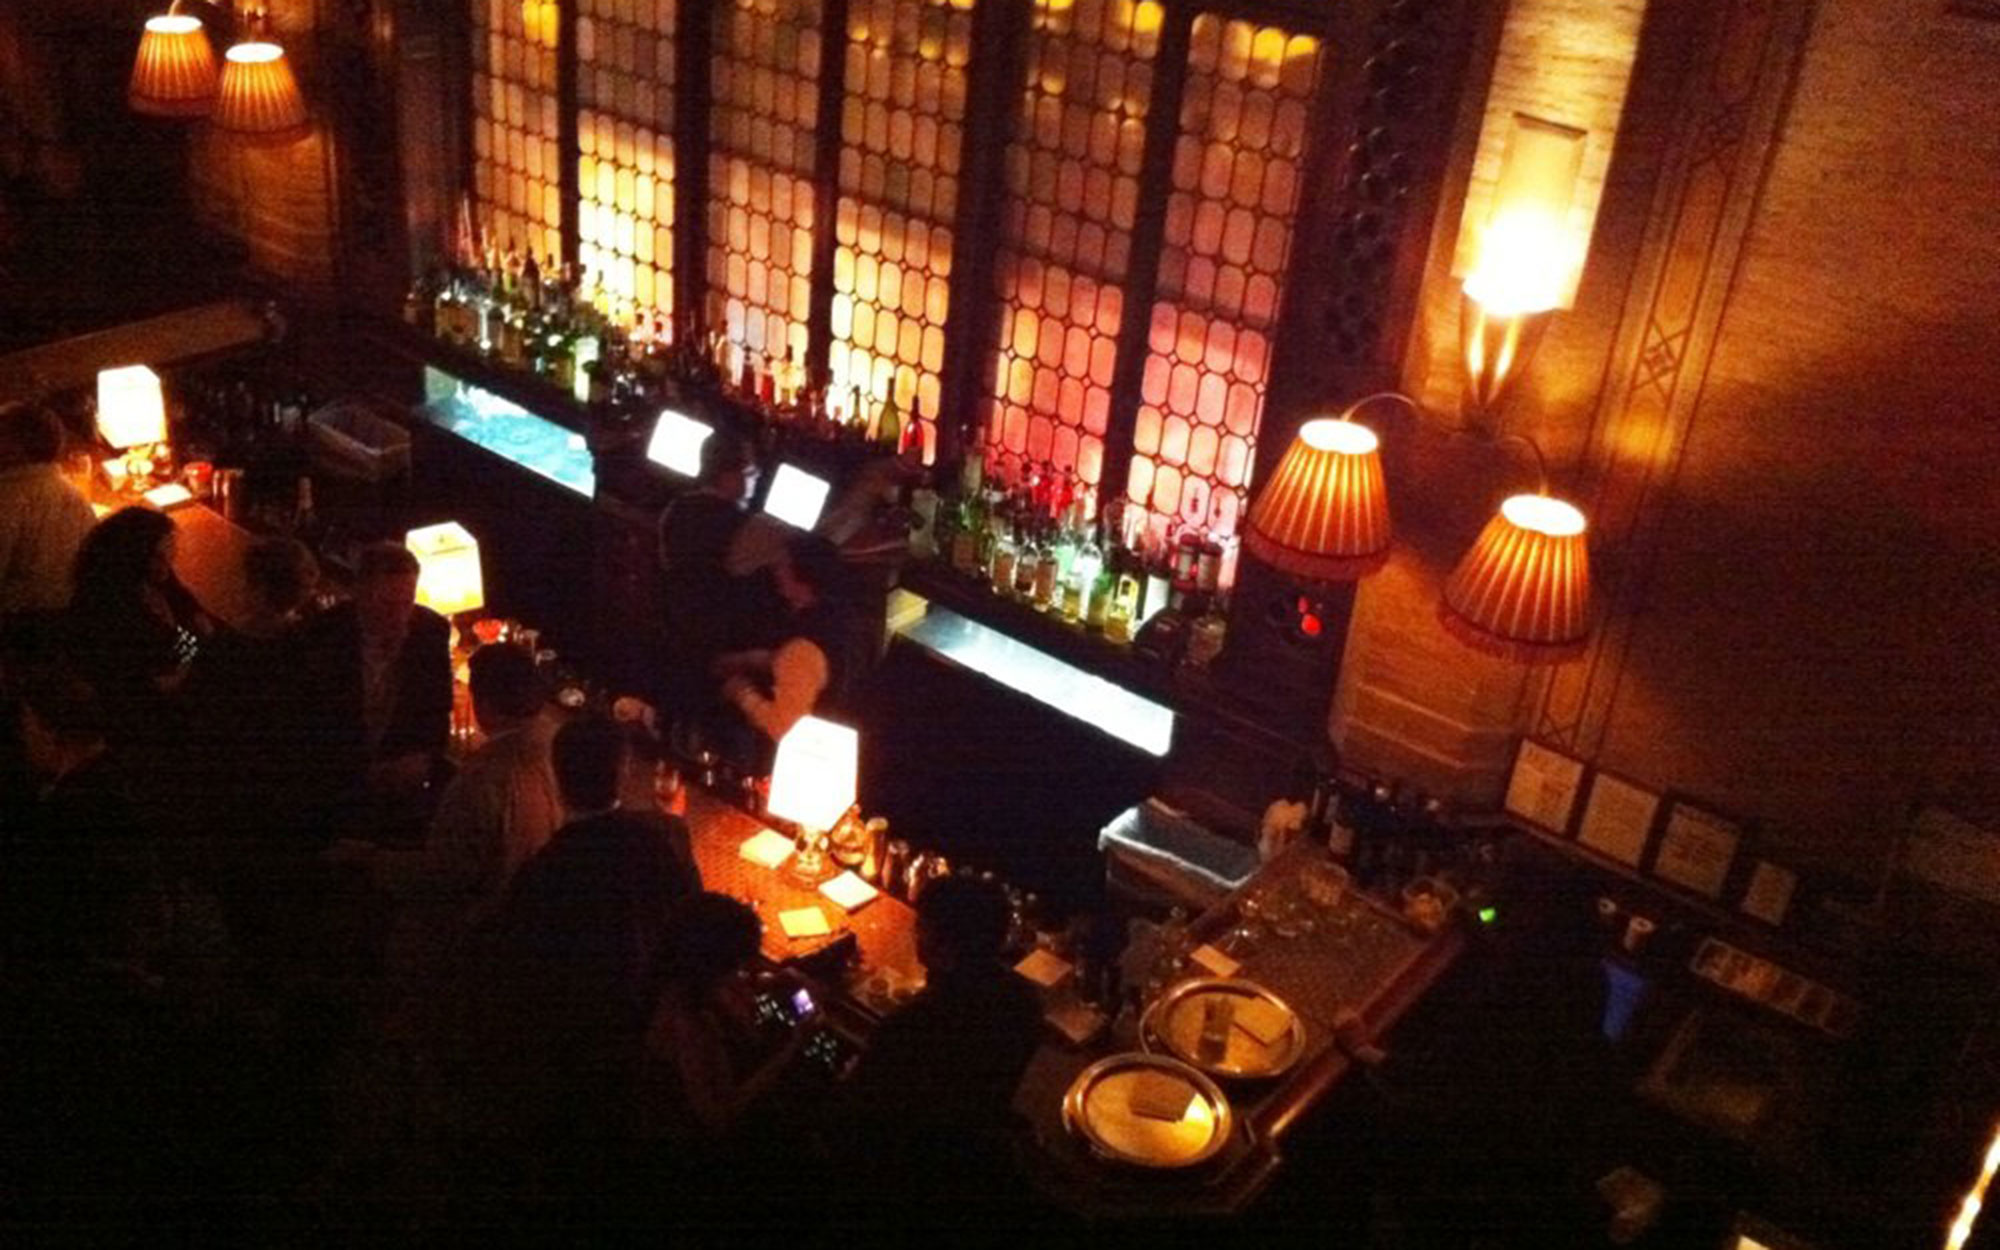 Best Old Restaurants and Bars in NYC: The Campbell Apartment